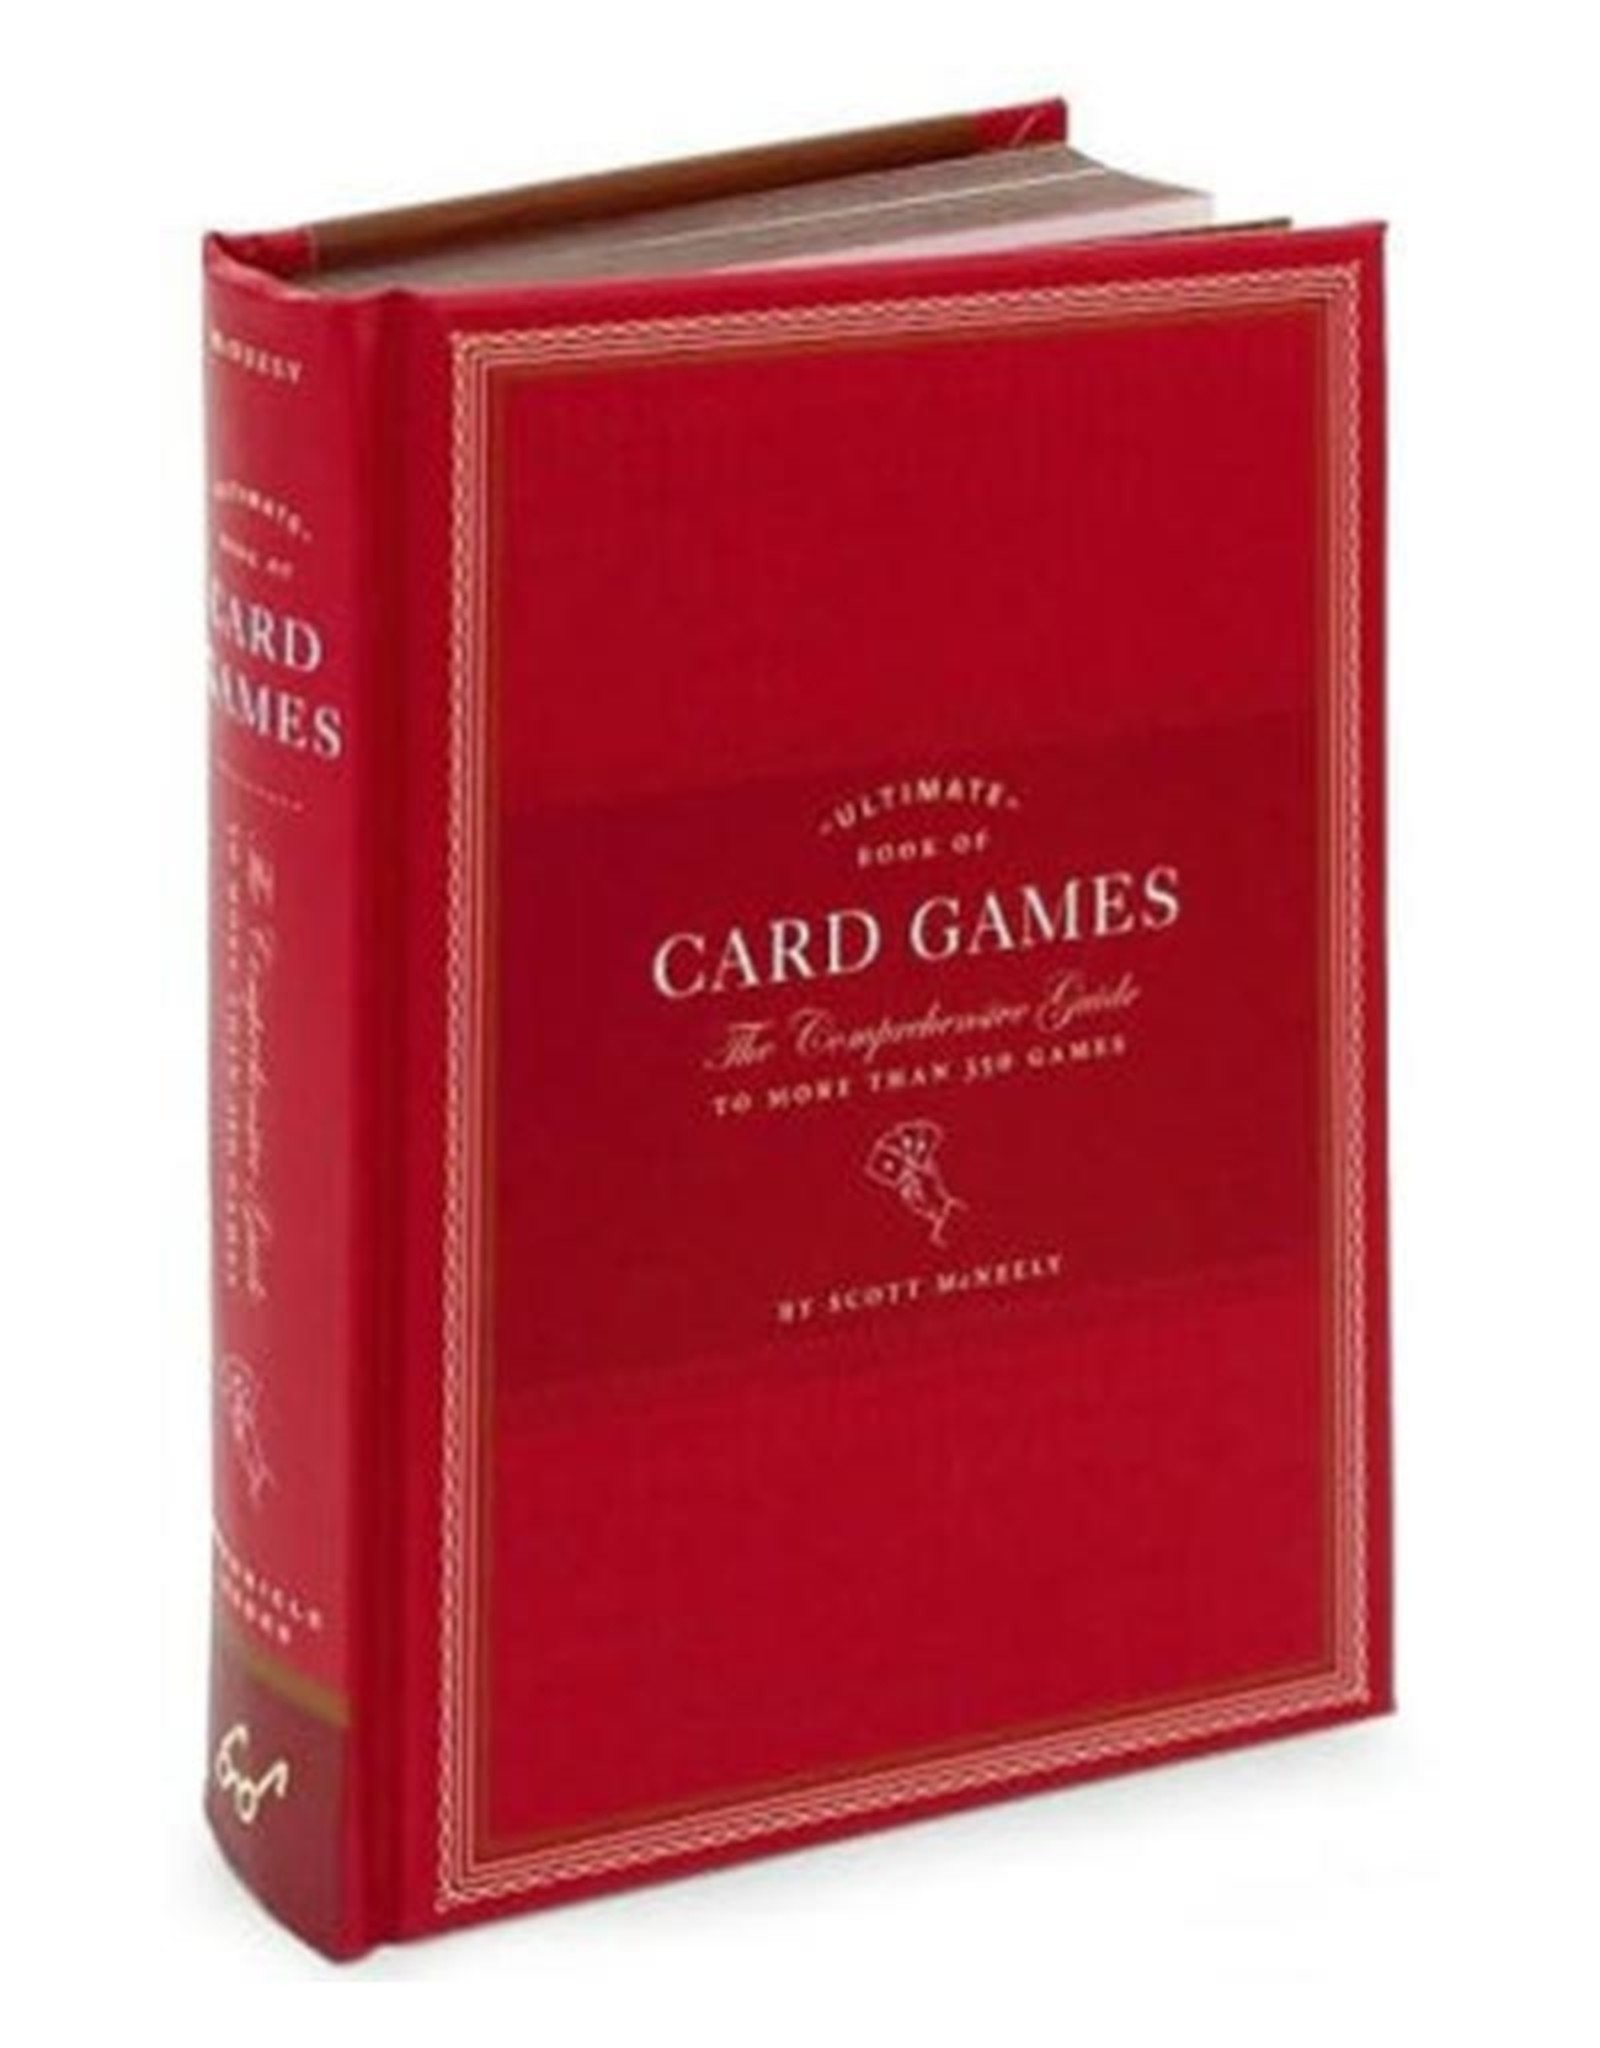 CHRONICLE BOOKS ULTIMATE BOOK OF CARD GAMES